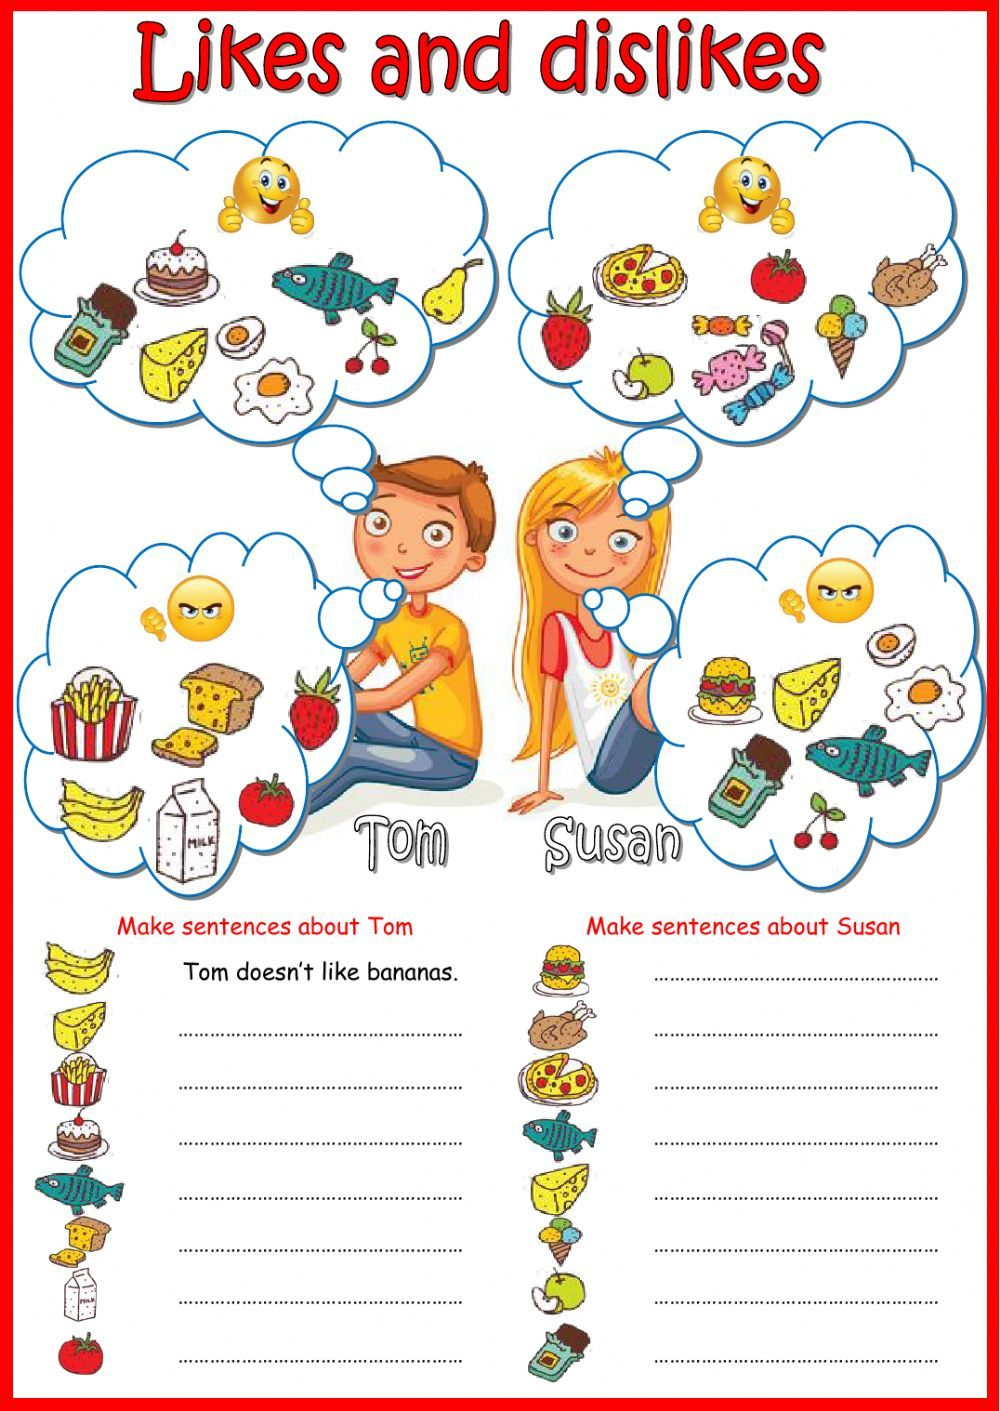 Likes and dislikes interactive and downloadable worksheet